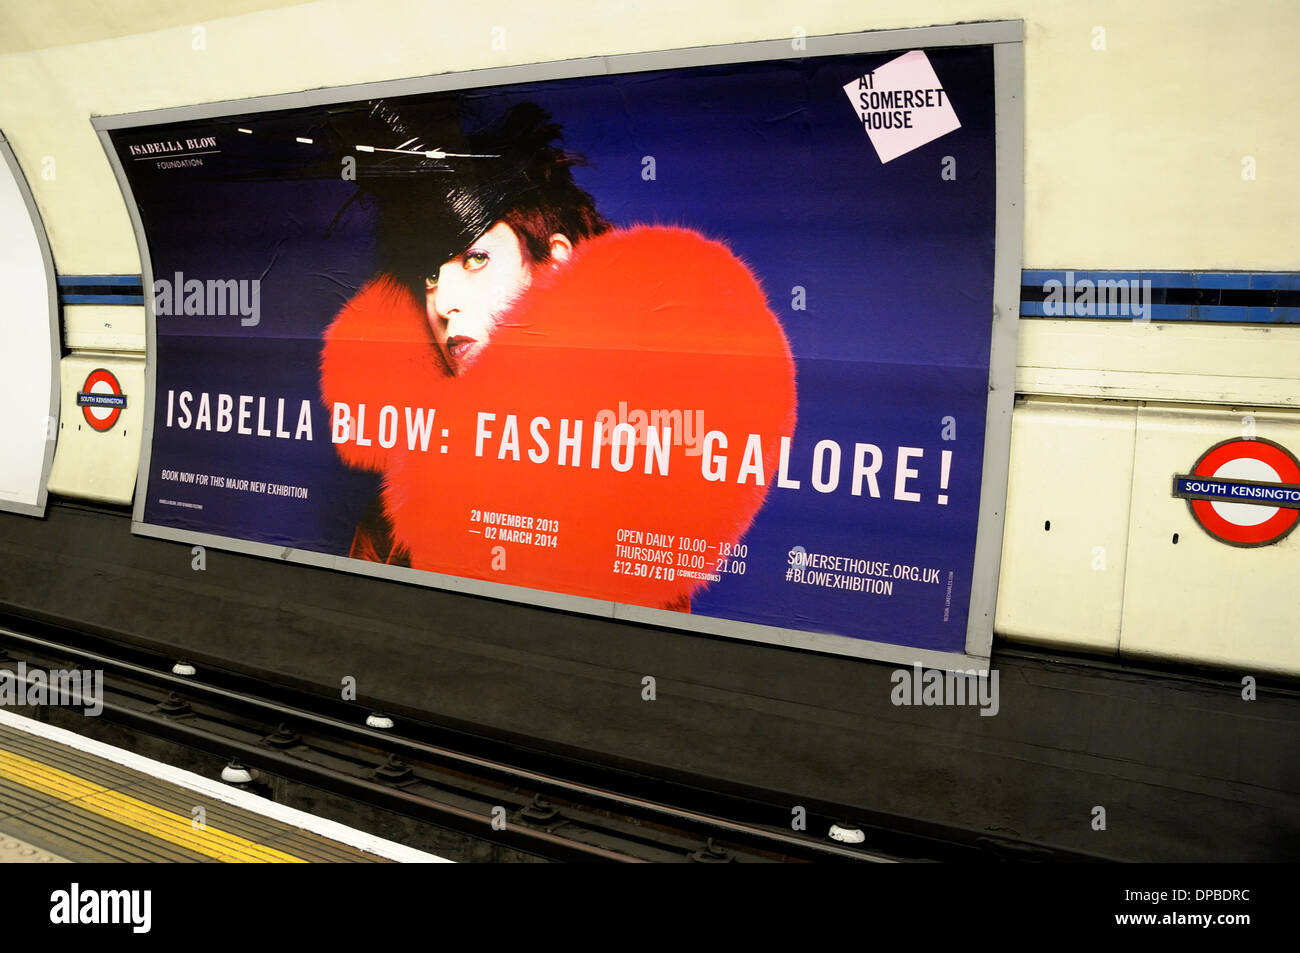 London, England, UK. Advert in South Kensington underground station for fashion exhibition at Somerset House - Stock Image